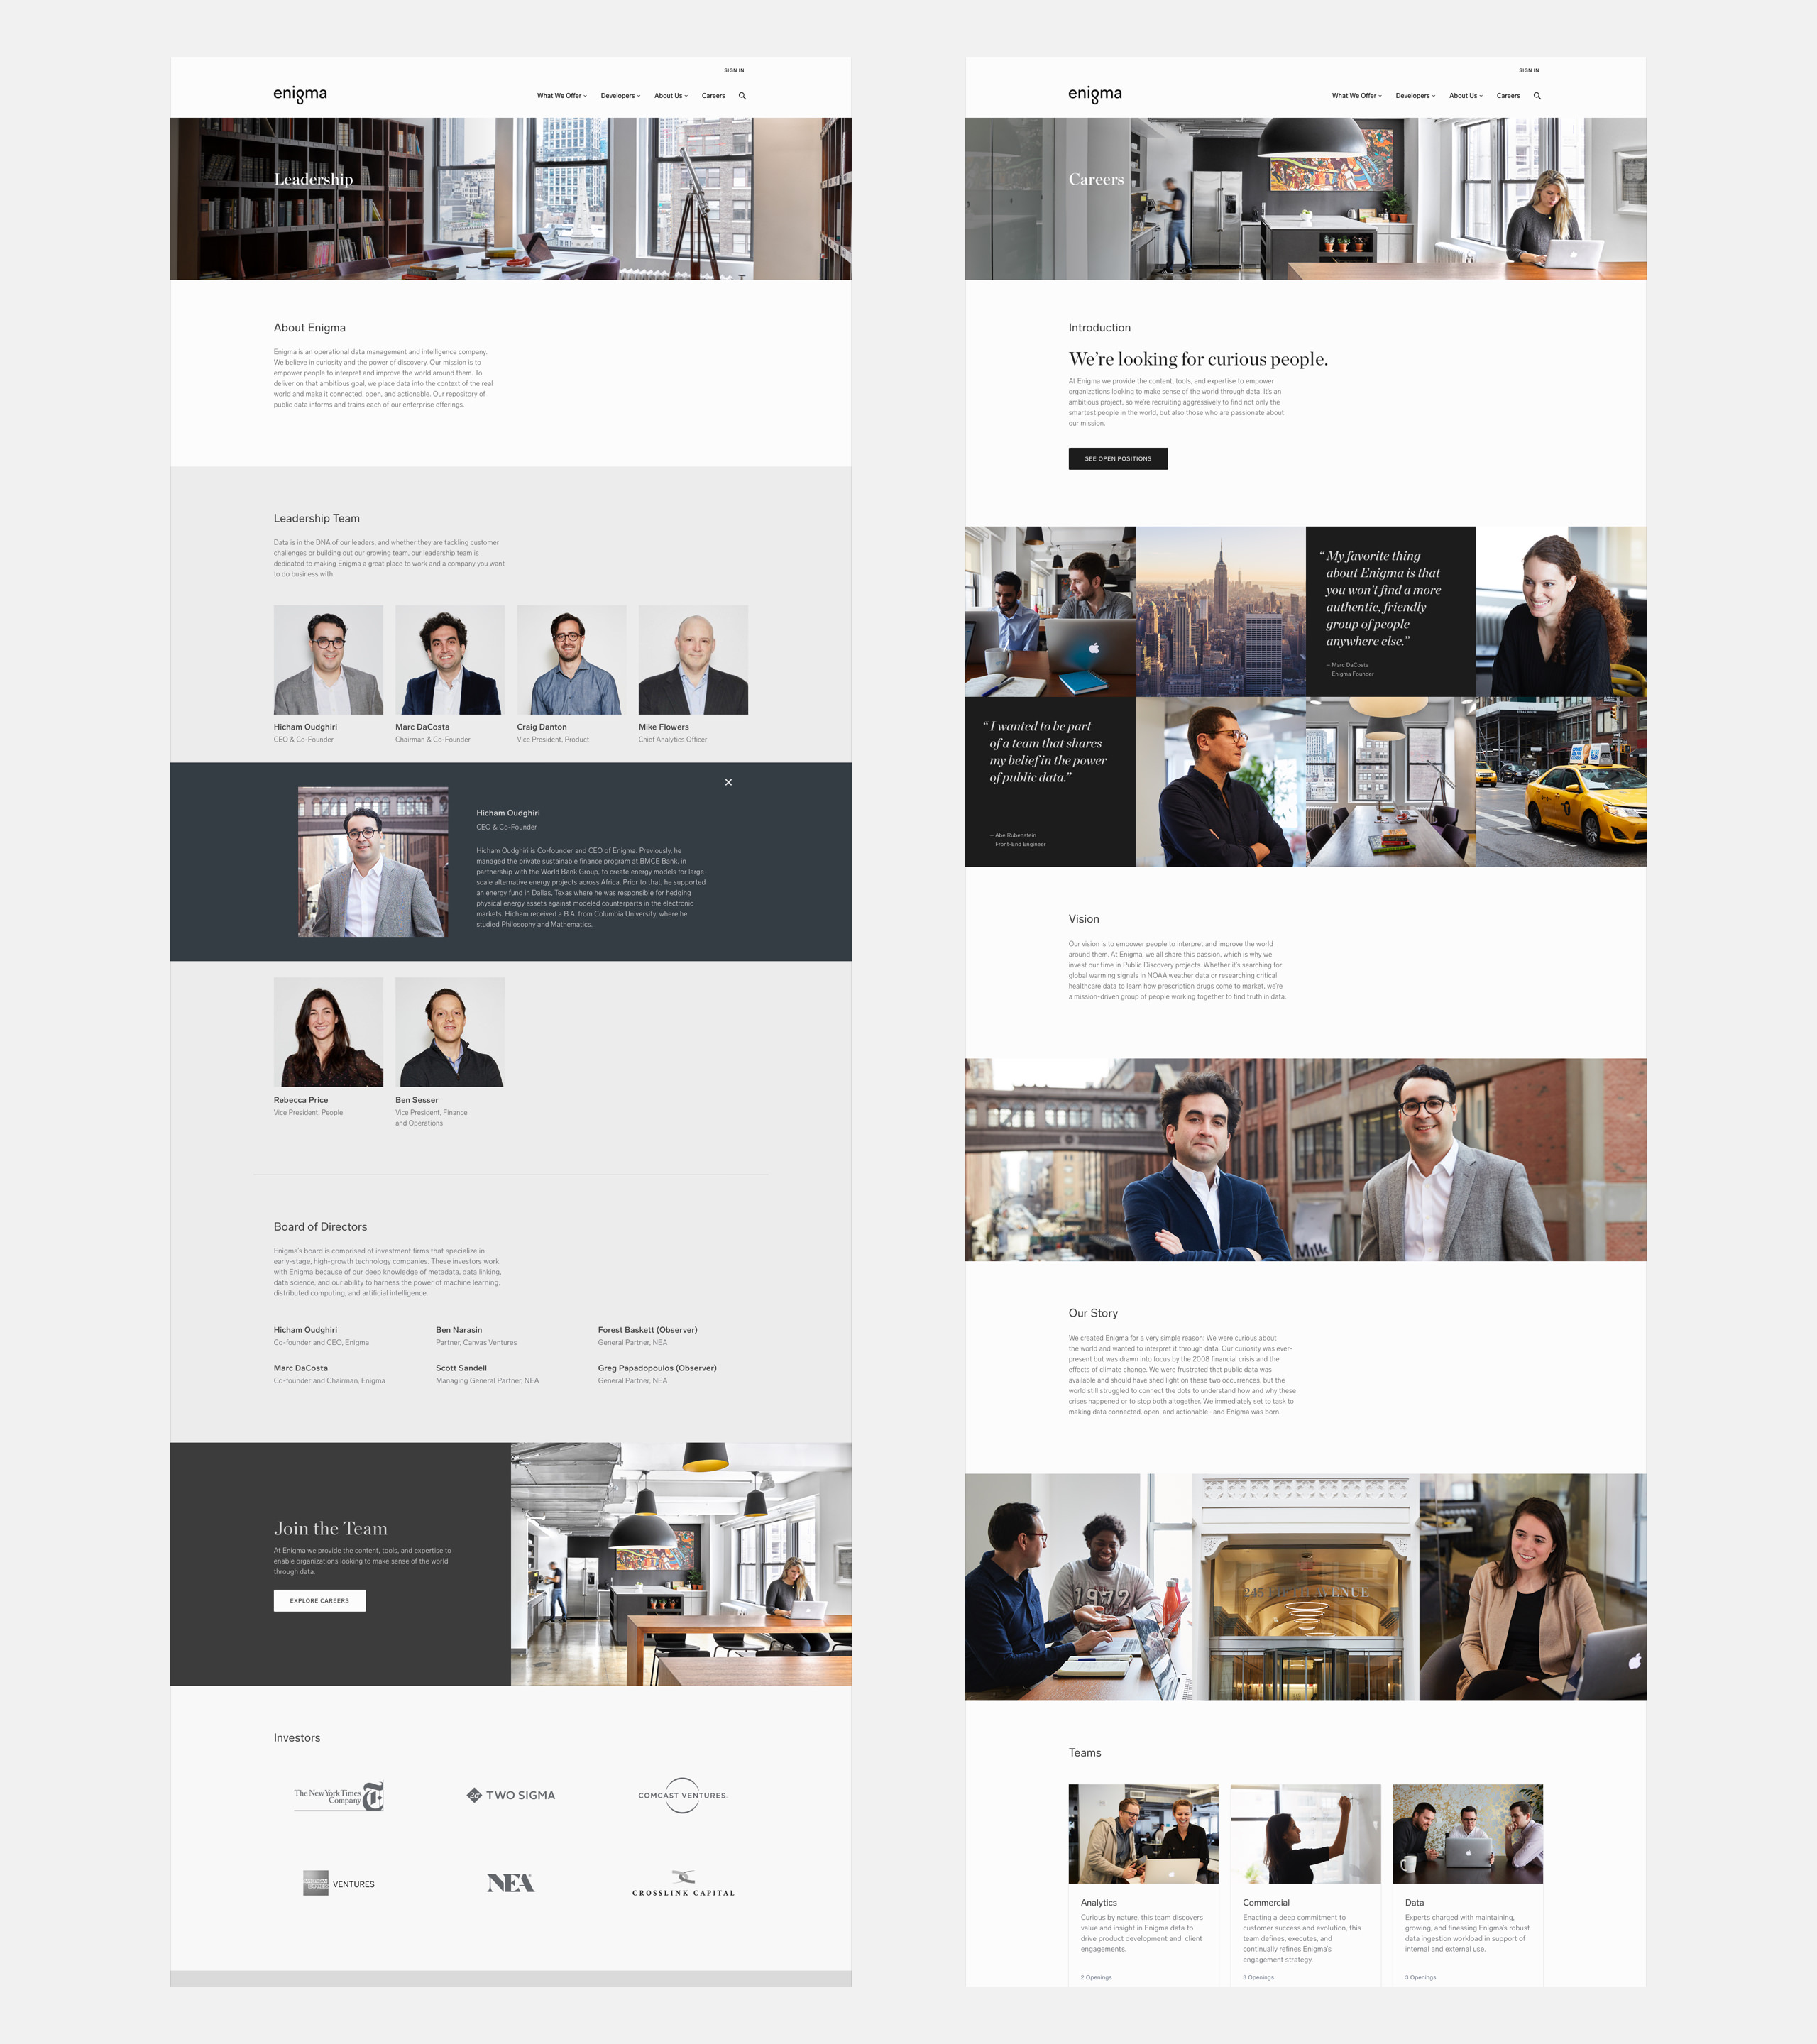 enigma-web-pages-company-careers-2up